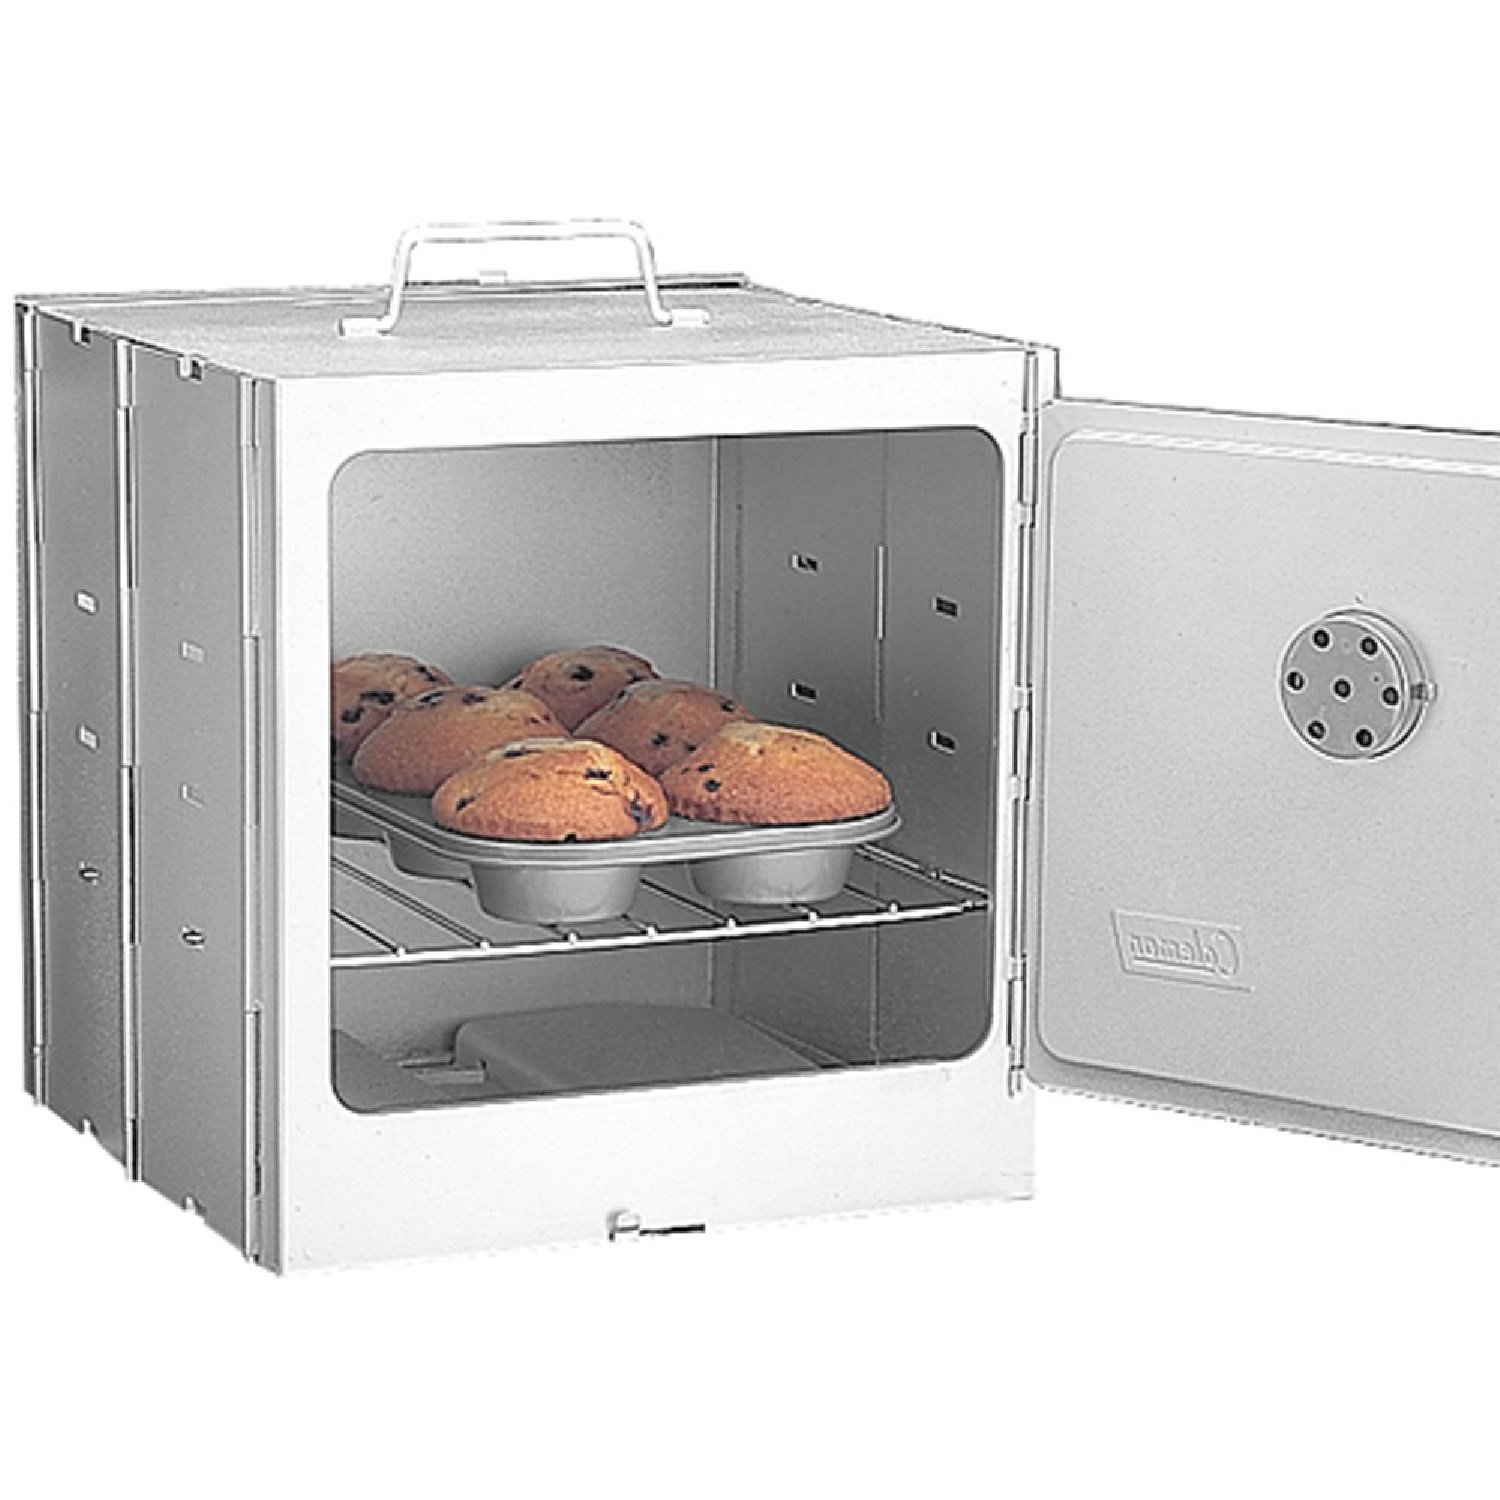 Portable Oven For Baking Cakes